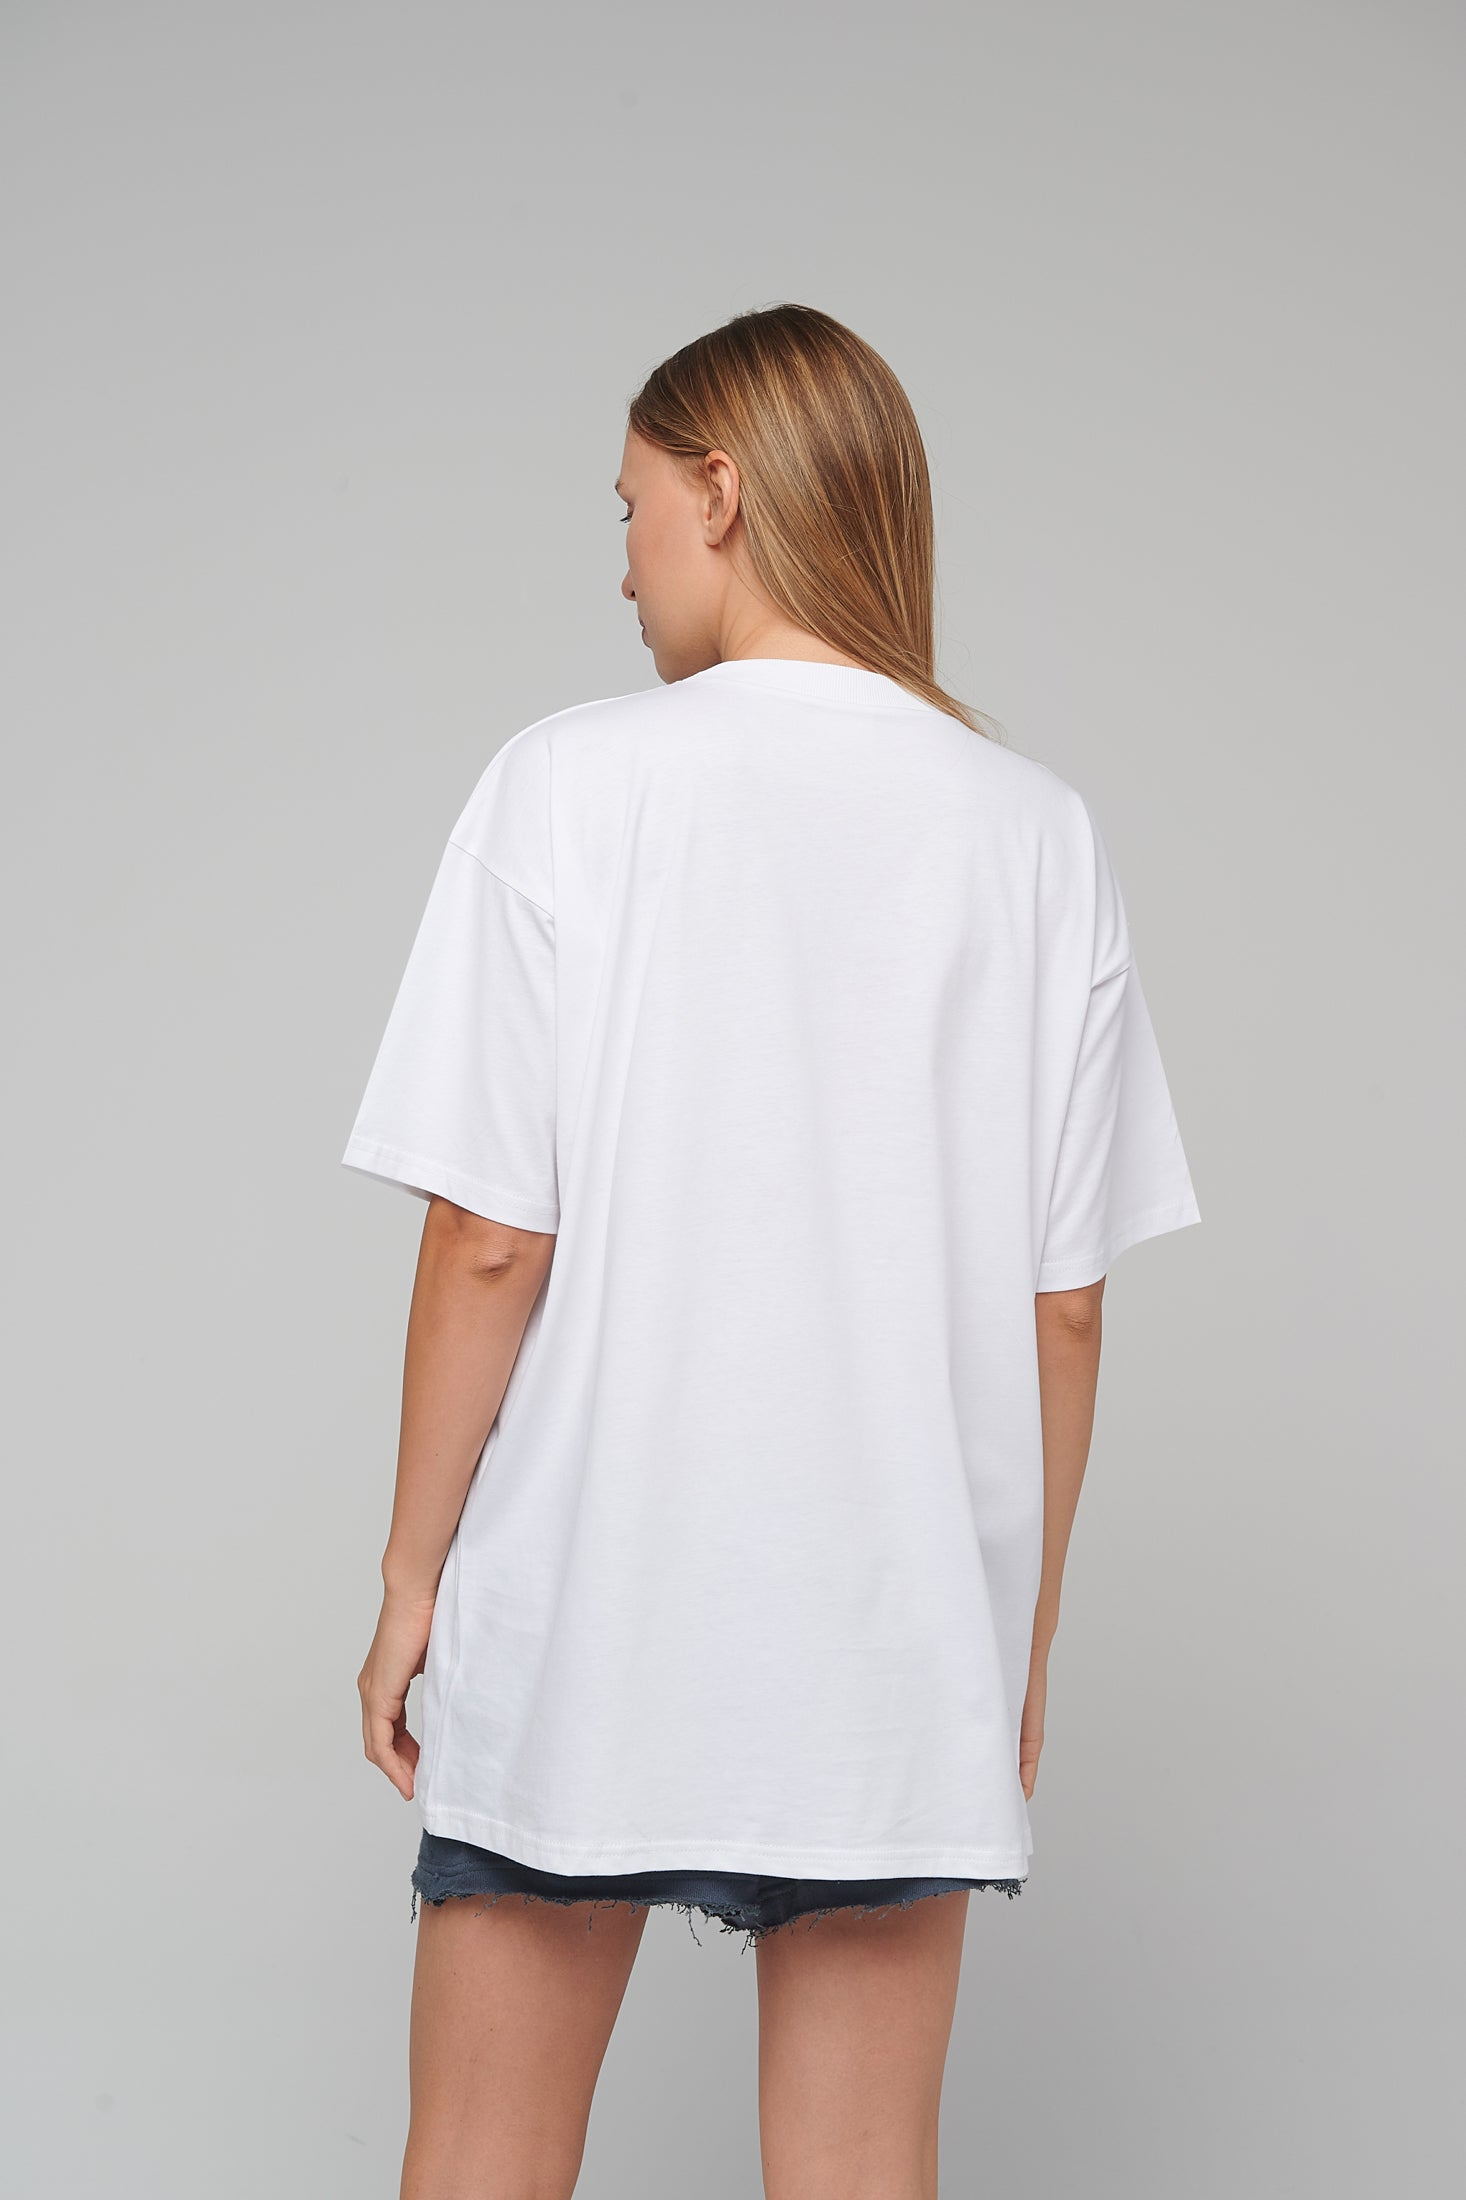 T&H Unisex One size T-shirt